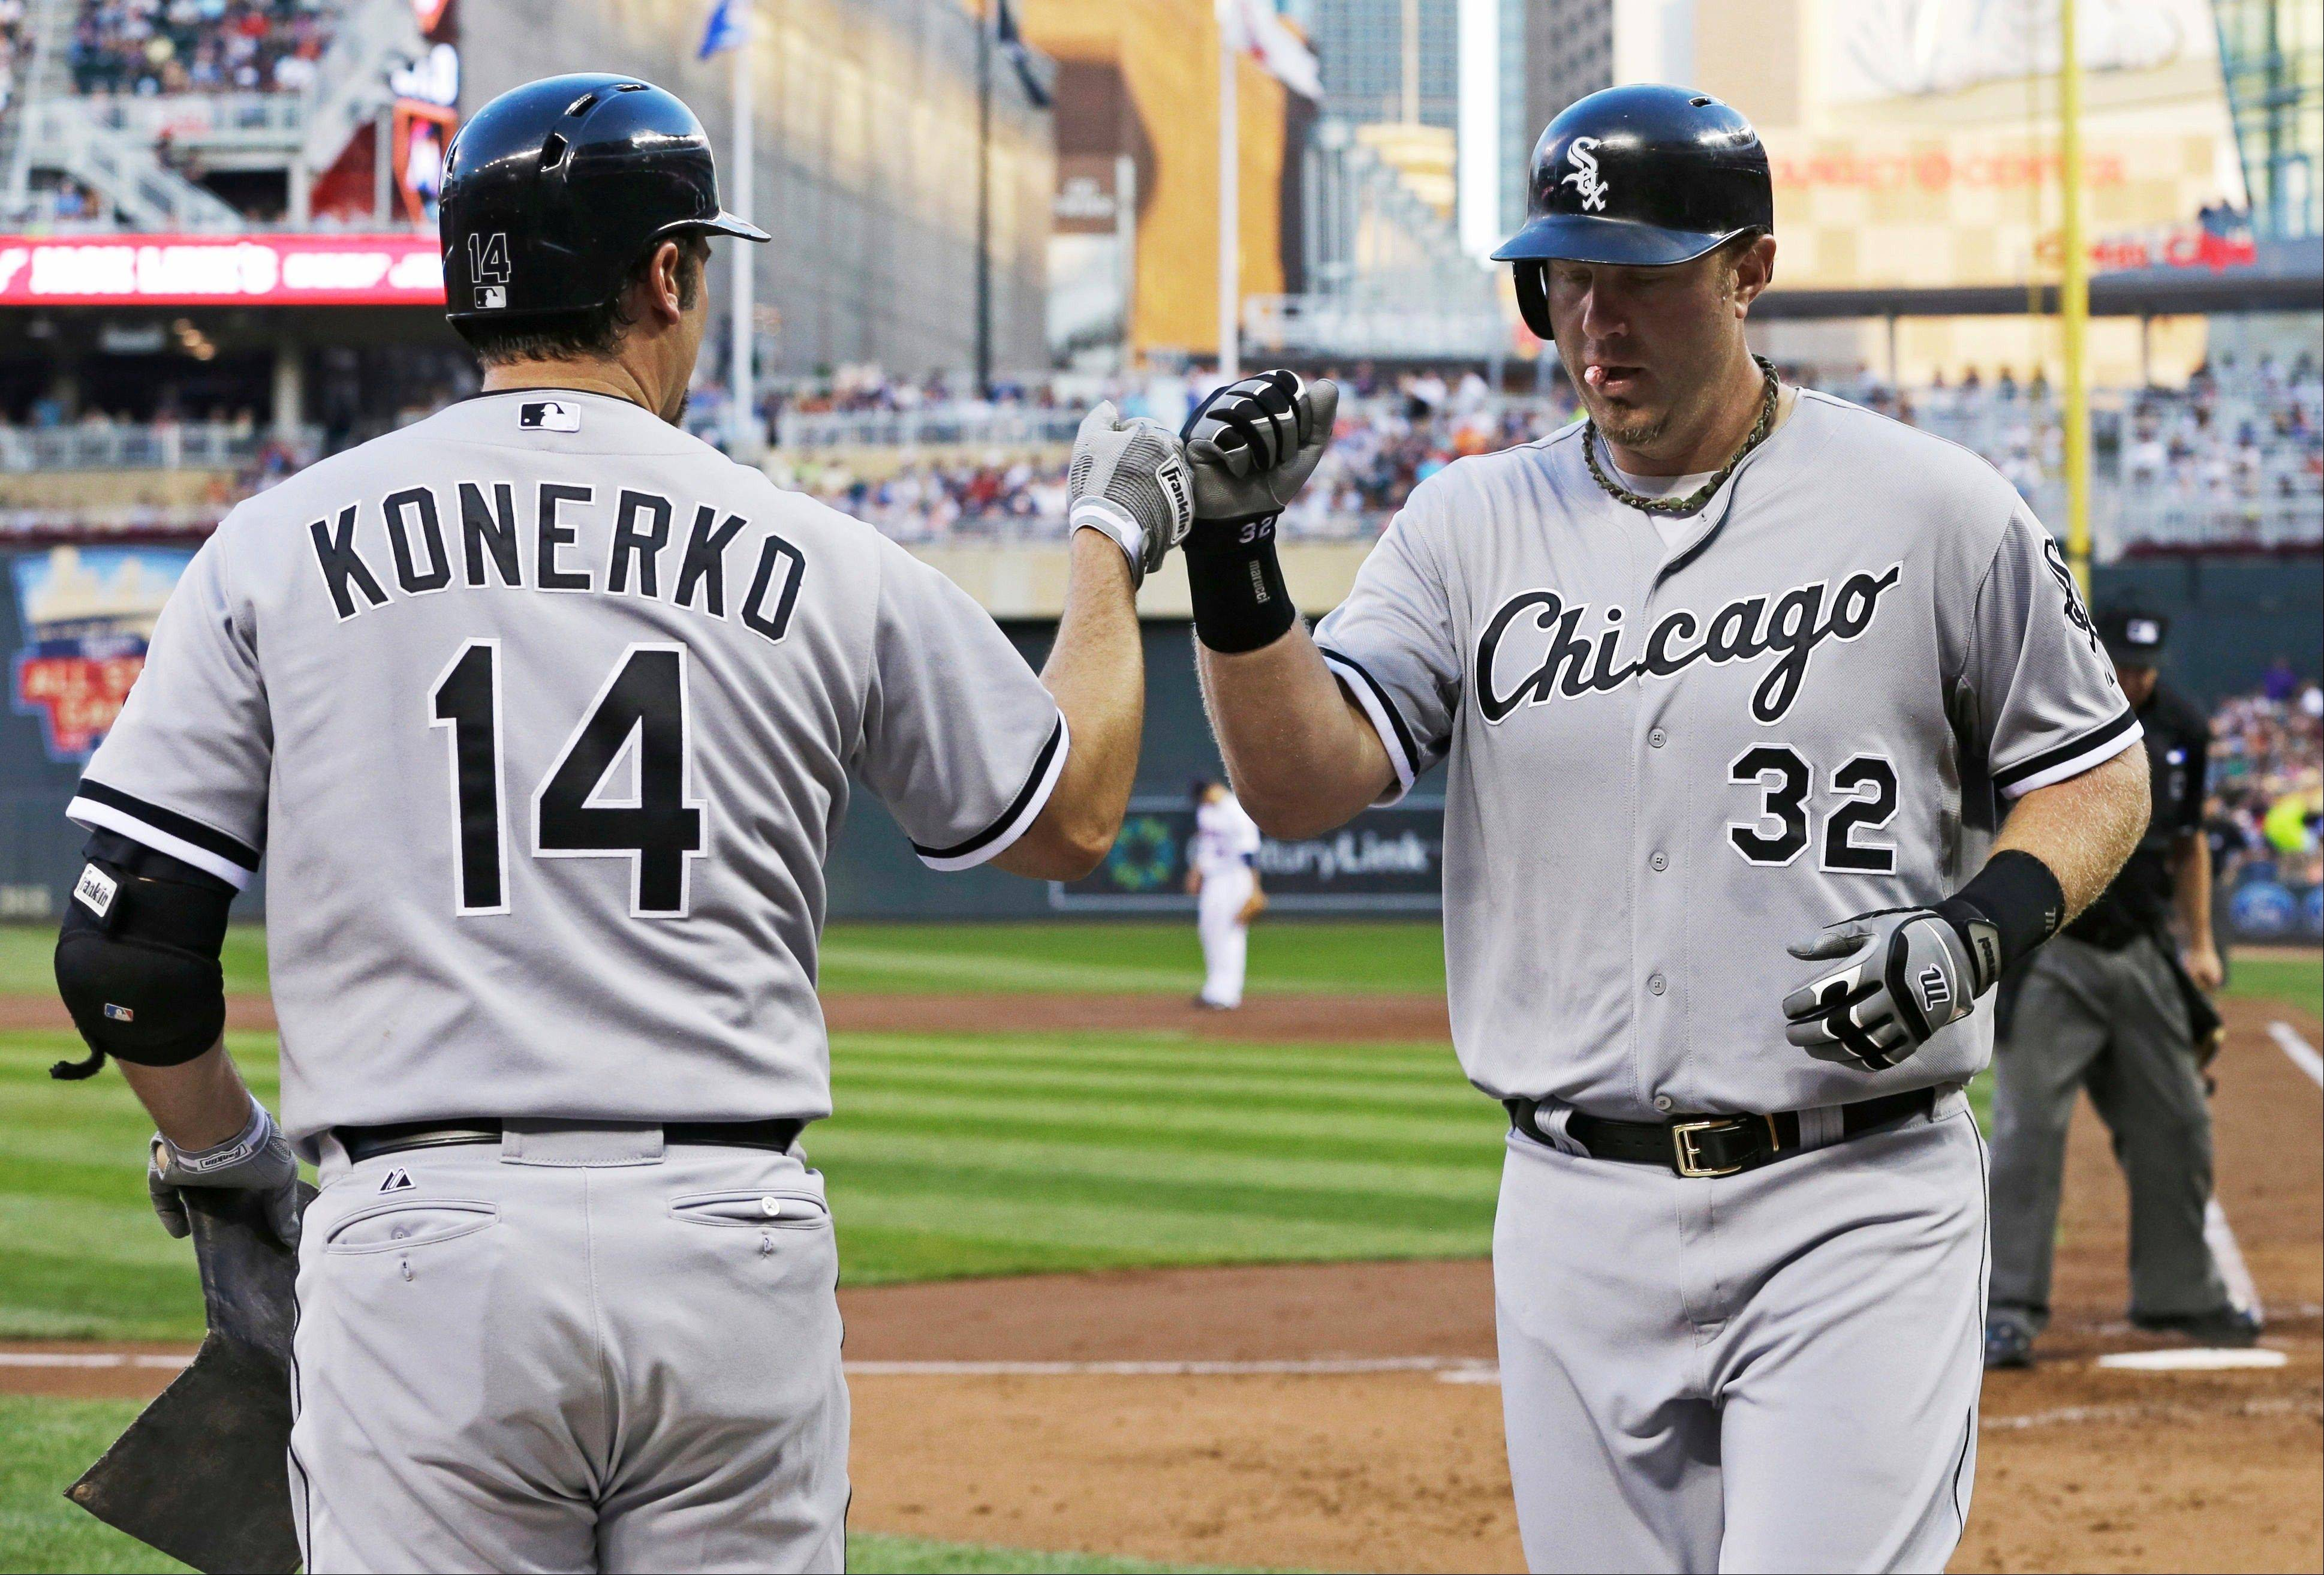 Paul Konerko, left, congratulates Adam Dunn after Dunn's solo home run off Minnesota Twins pitcher Kevin Correia during Friday night's game in Minneapolis. The Sox beat the Twins 5-2.